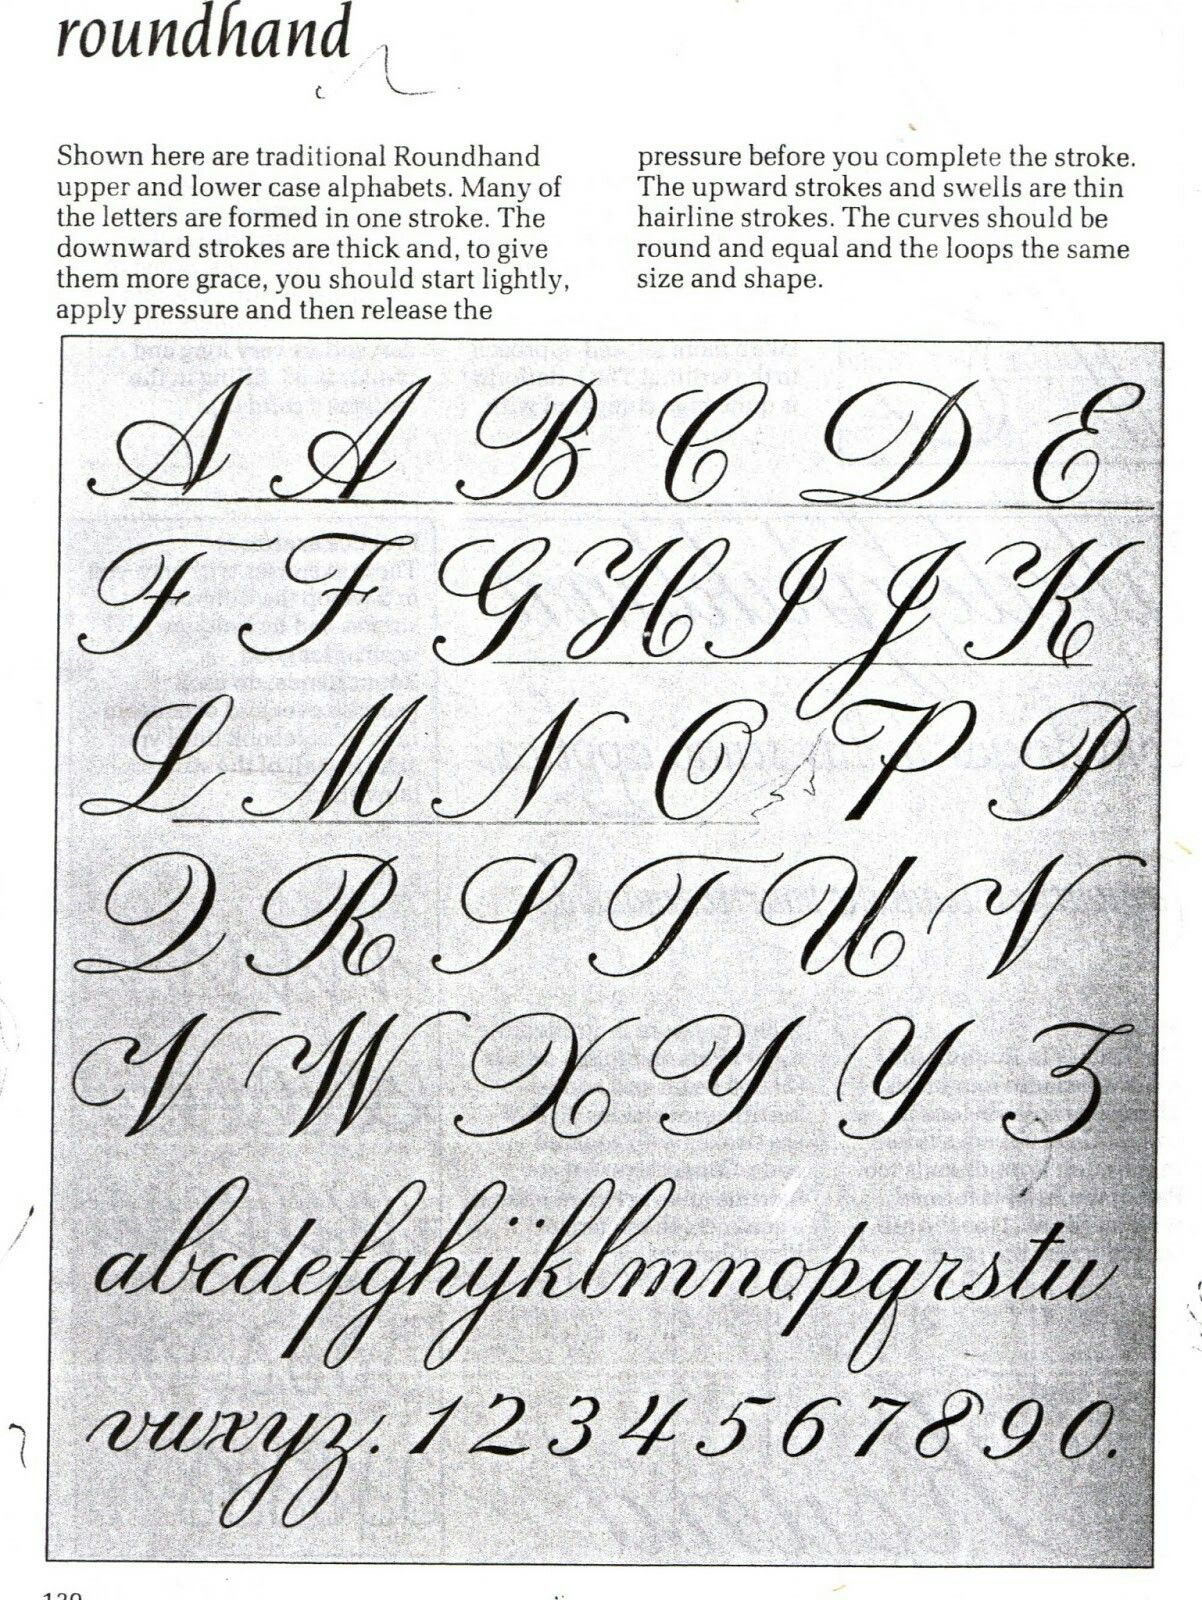 Calligrafia Old School Old School Script Taught In The 20th Century Apuntes